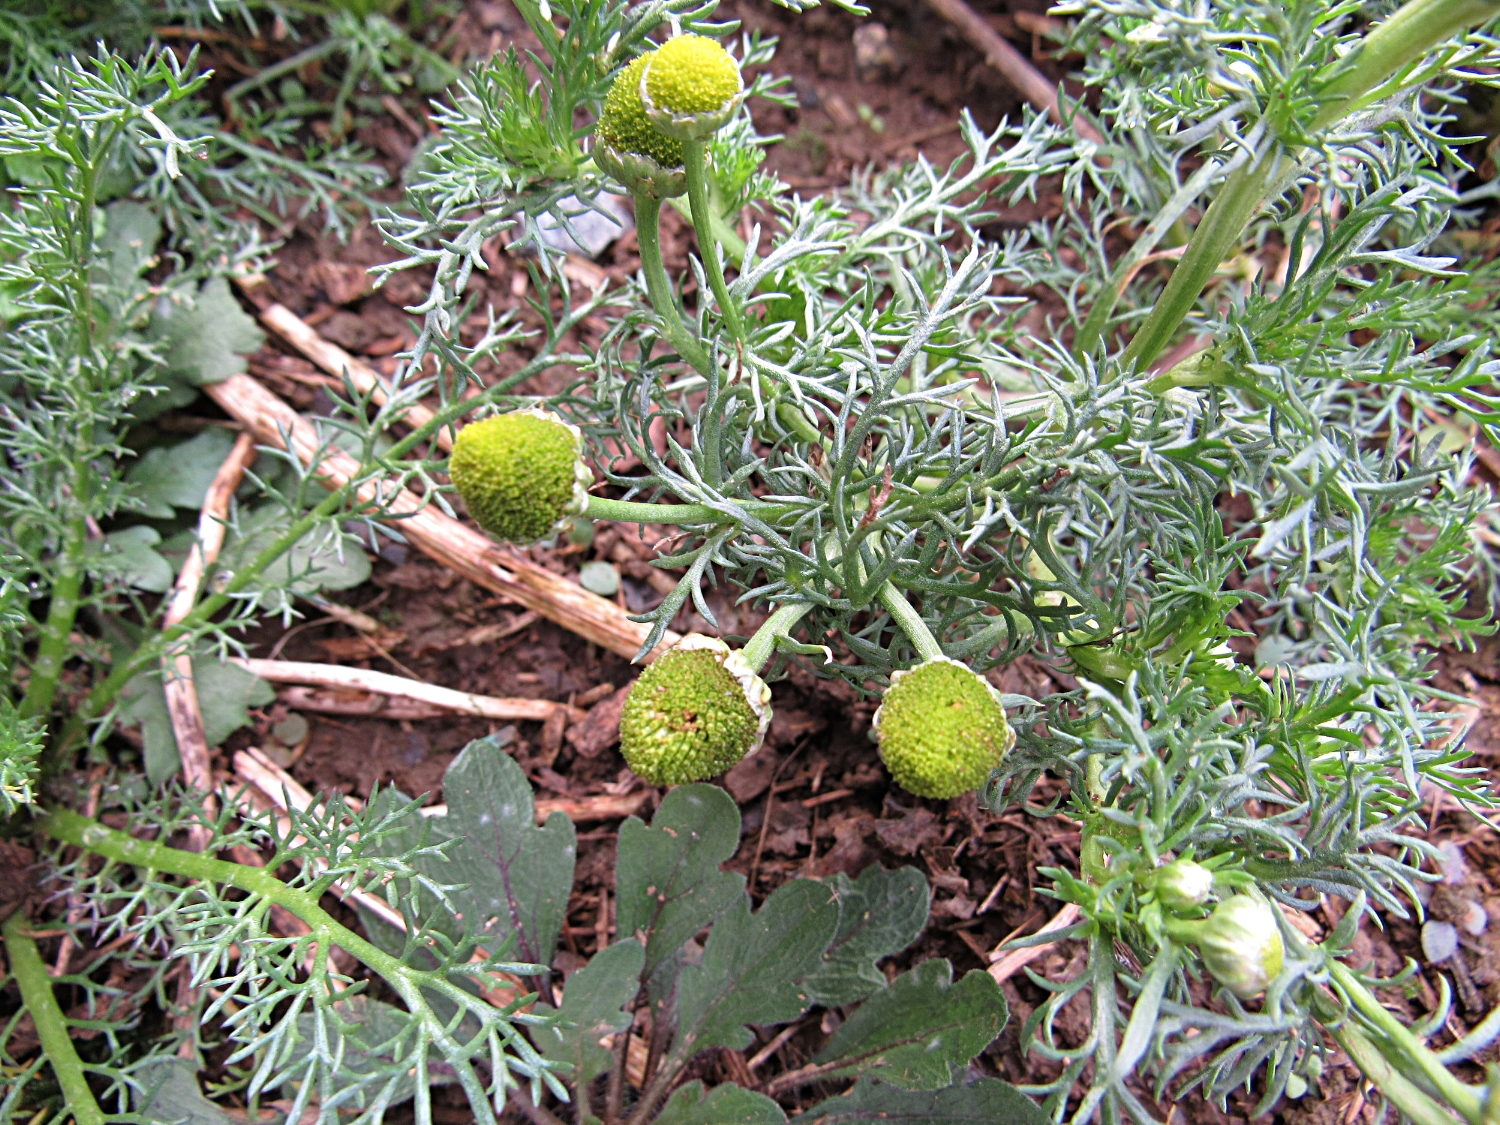 The feathery leaves of pineapple weed resemble the more well-known German and Roman chamomiles.